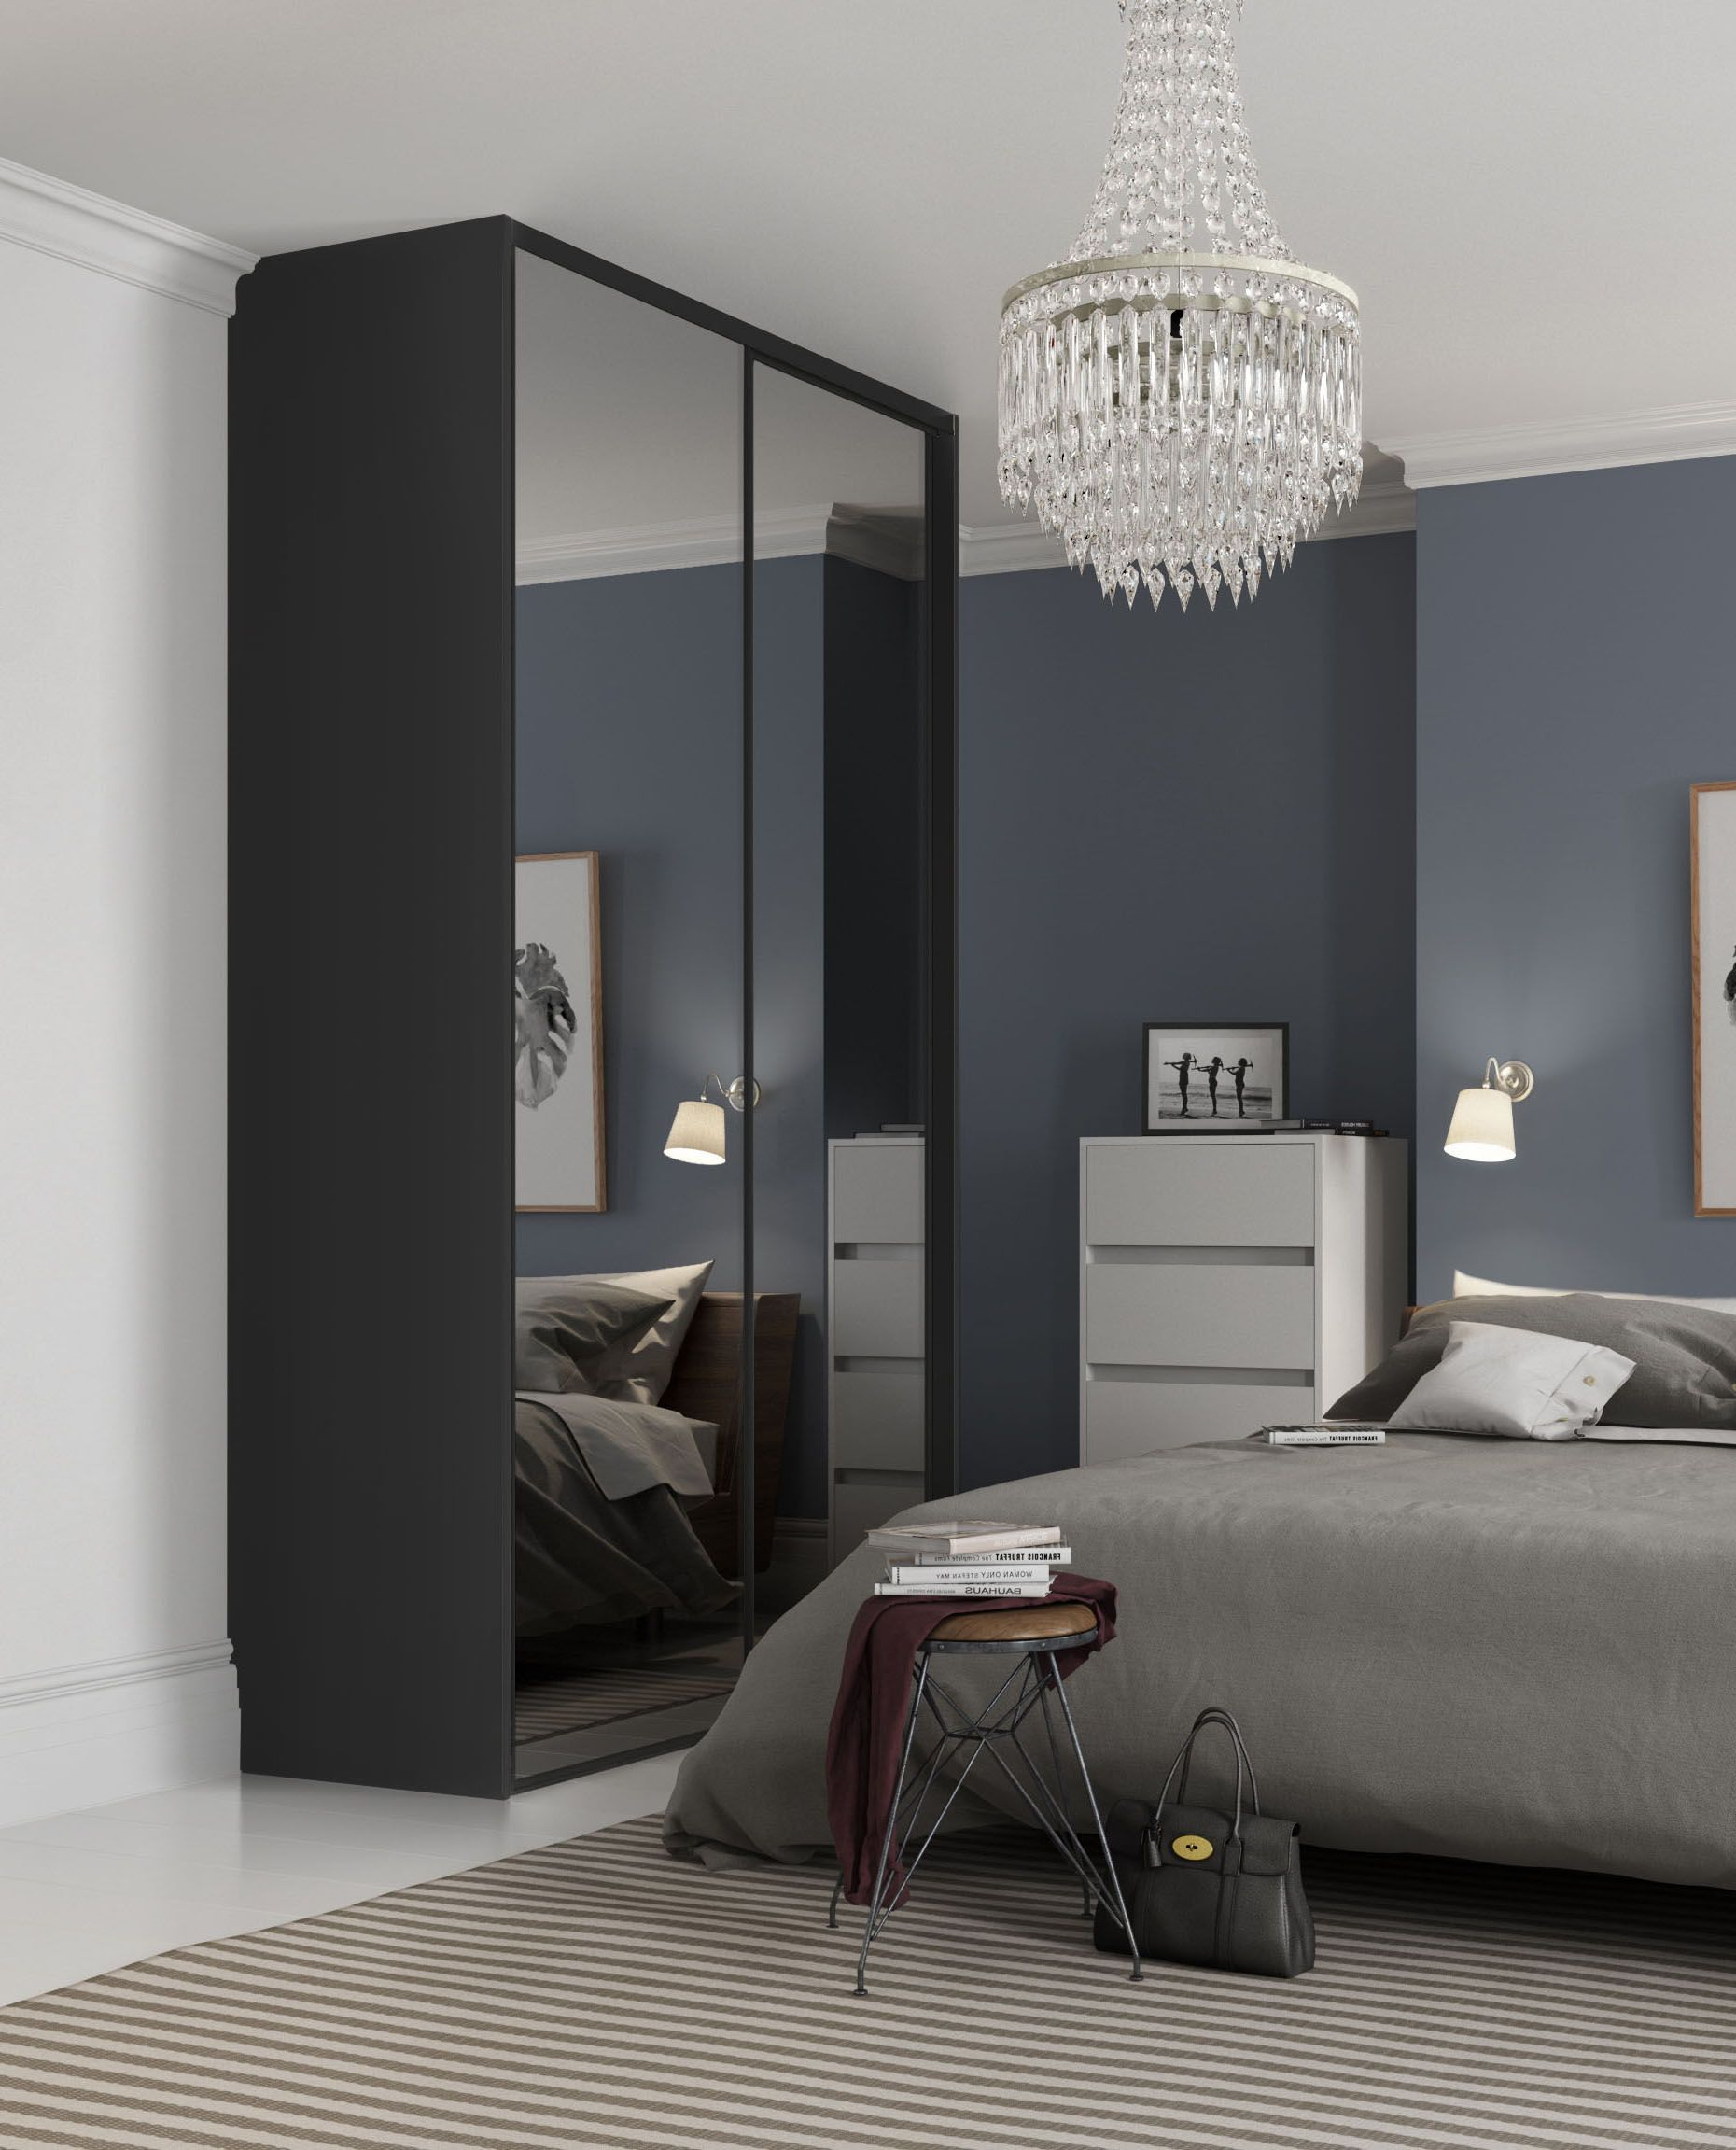 Excellent Bedroom Cupboard Design : Striking Modular Bedroom ...